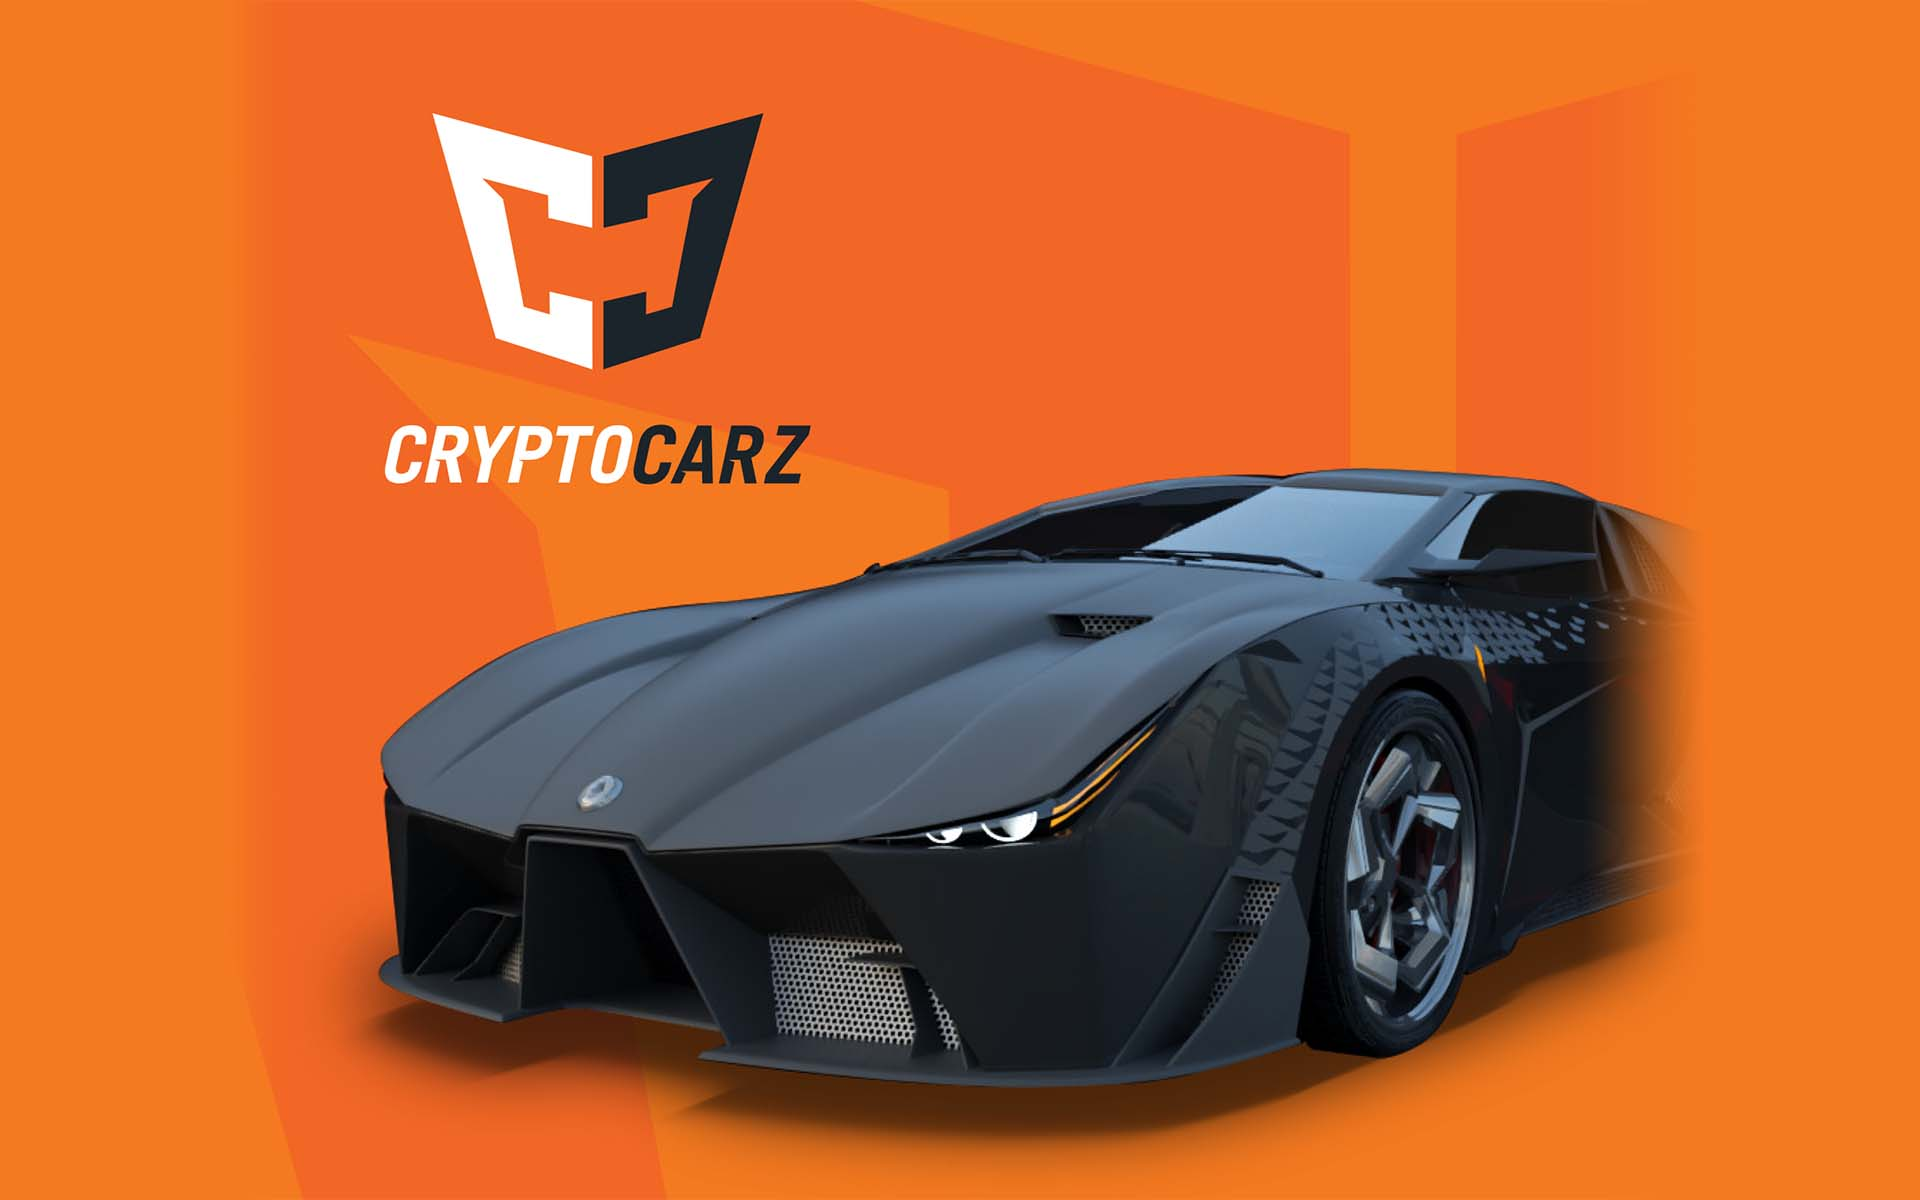 Blockchain Studios Debuts CryptoCarz, Collectible Racing Cars for VR Gaming, at Consensus 2018